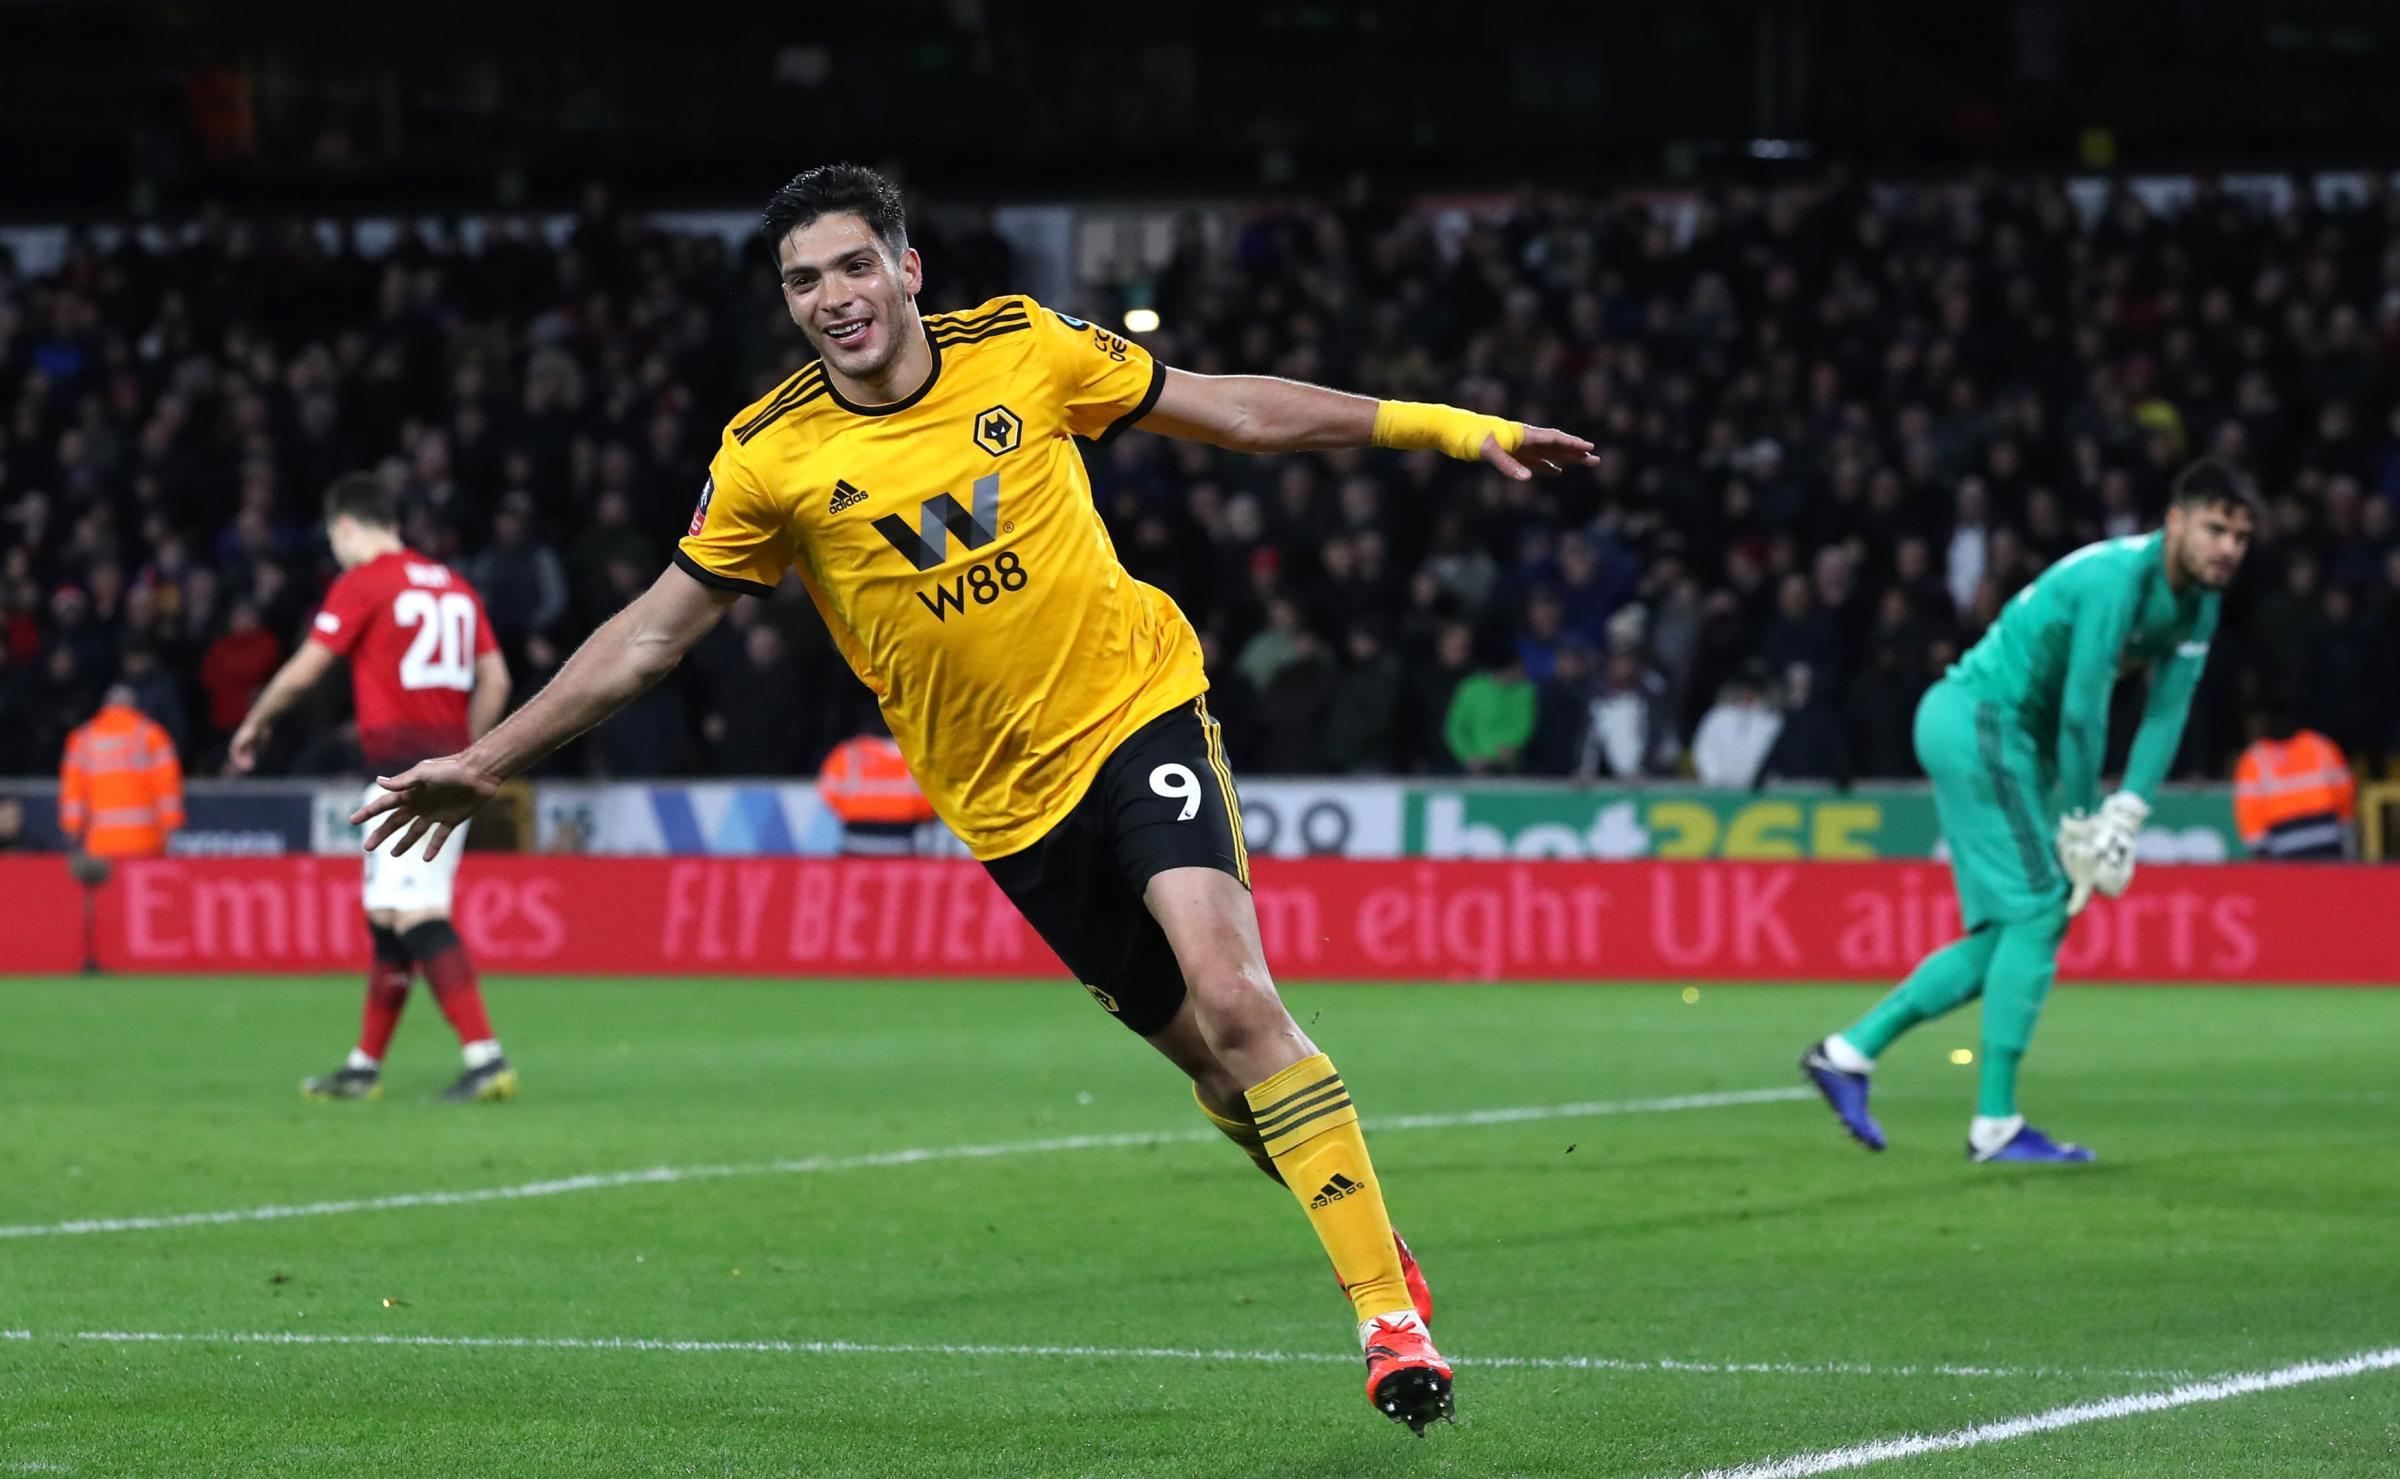 Raul shines again as Wolves knock out Manchester United